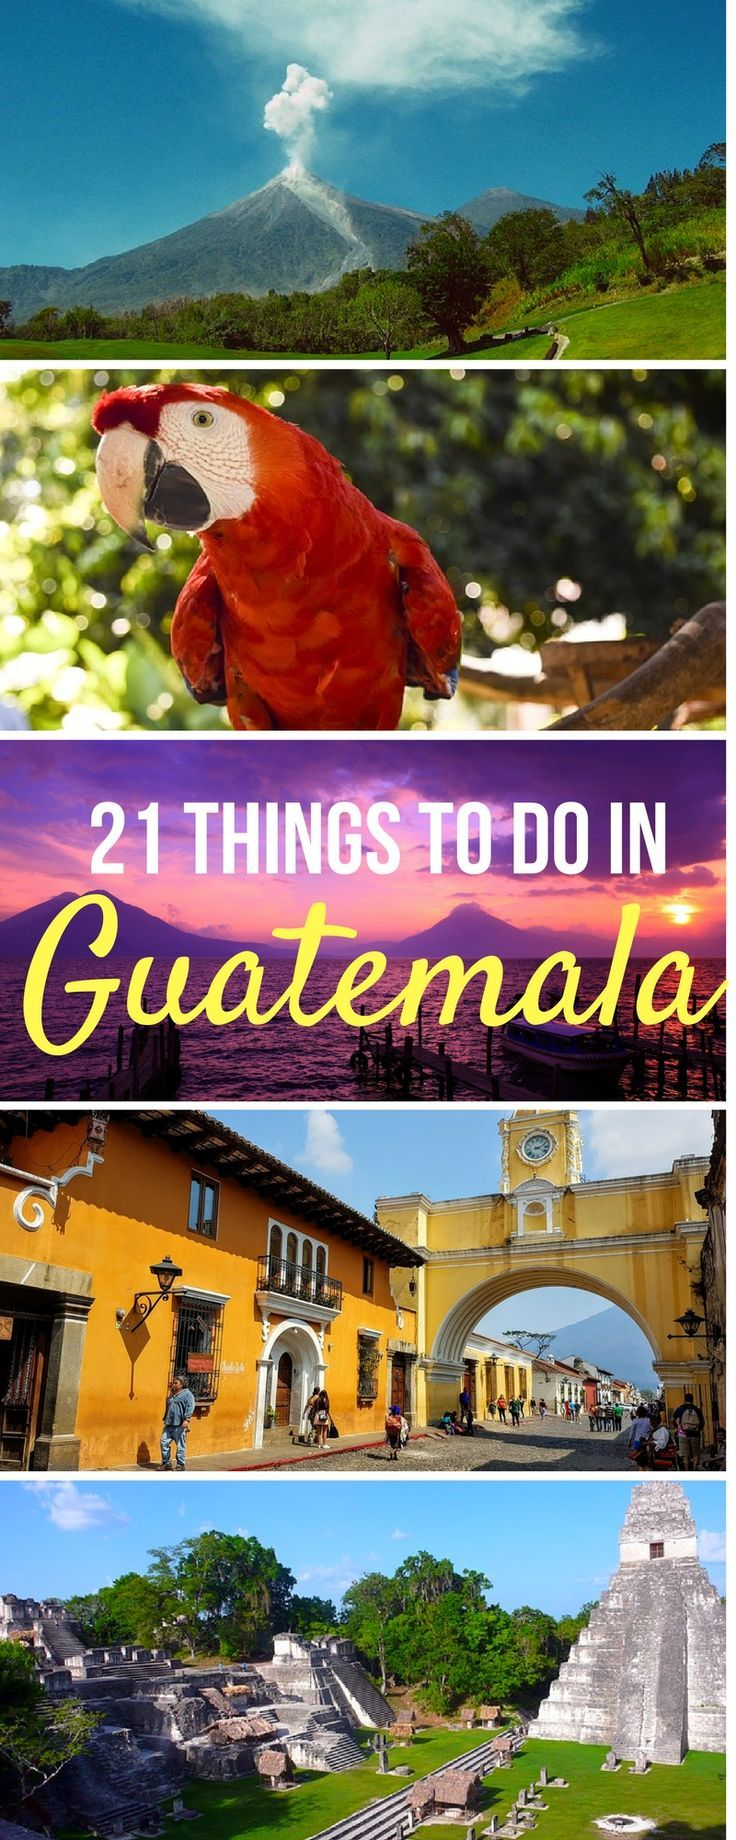 Wondering what to do in vibrant Guatemala? Explore jungles, volcanoes, colonial cities, rivers, beaches, volcanic lakes and more. From Antigua and beyond, this is your ultimate Guatemala itinerary and guide!